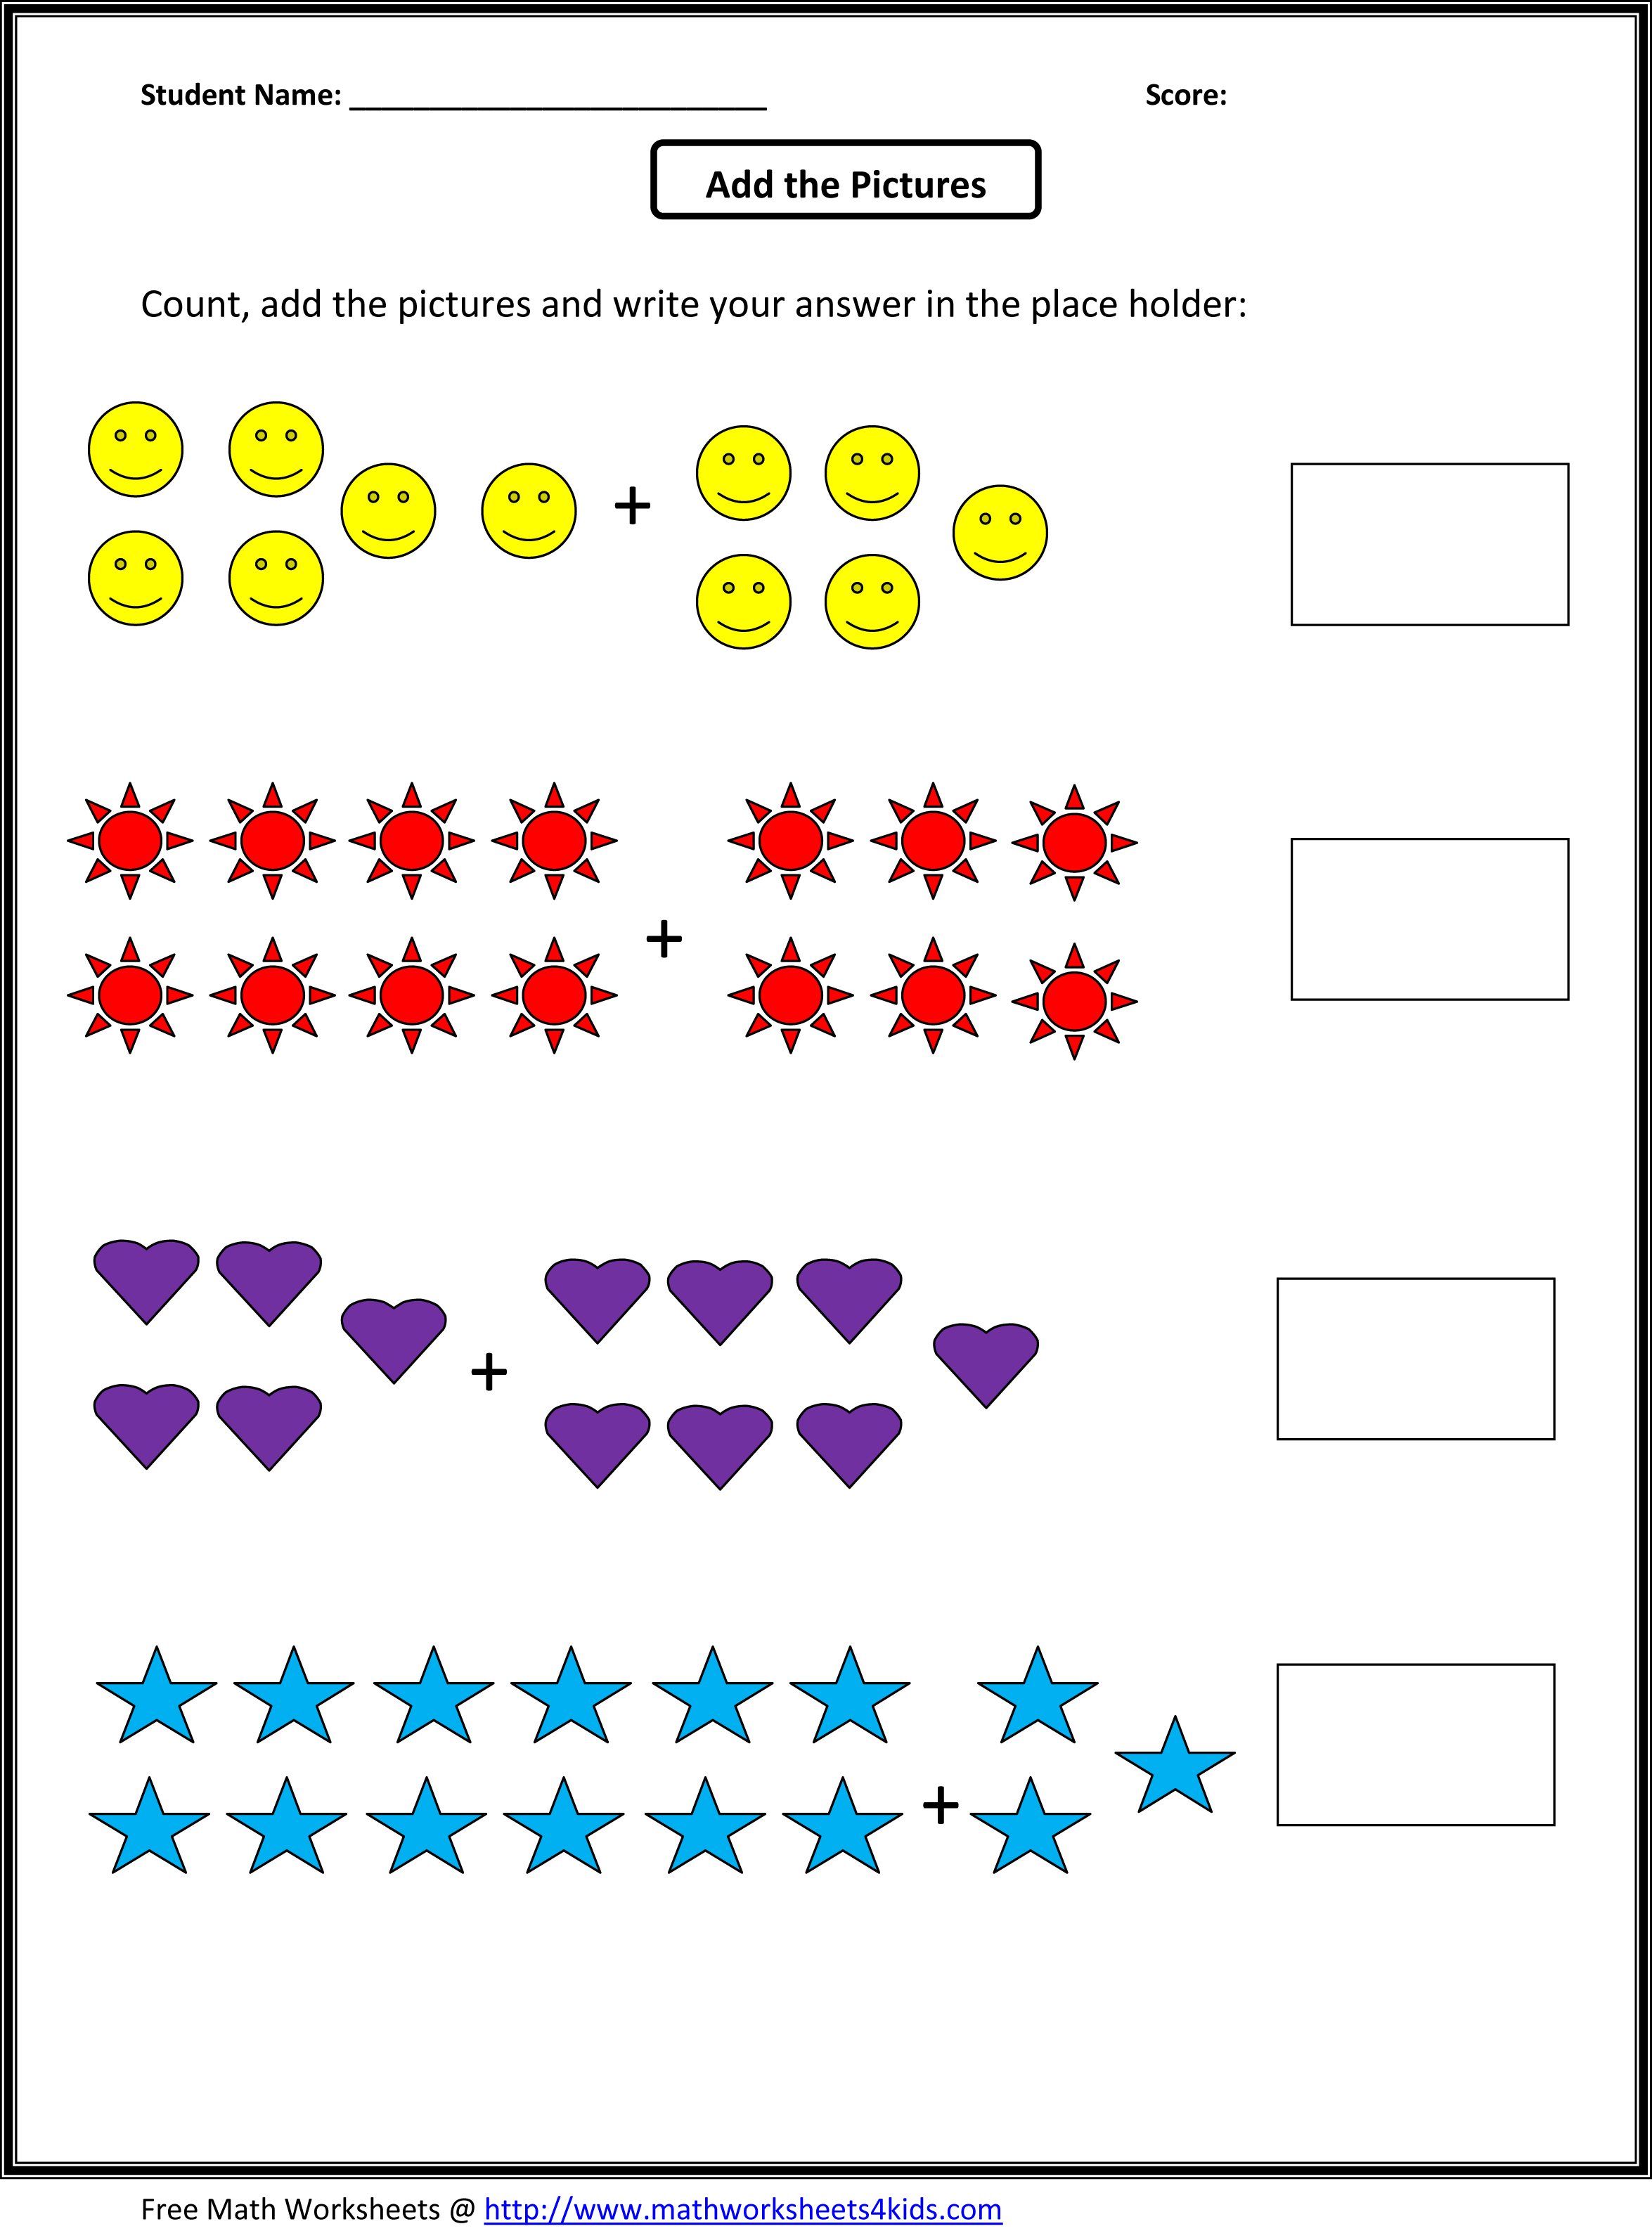 Weirdmailus  Splendid Grade  Maths Worksheet  Reocurent With Inspiring Math Worksheets For St Grade Free  Reocurent With Beauteous Solving Linear Equations Worksheet With Answers Also Solving Trig Equations Worksheet With Answers In Addition Months Of The Year Practice Worksheets And Pelvic Ultrasound Worksheet As Well As Make Math Worksheets Additionally Finding The Percent Of A Number Worksheet From Reocurentcom With Weirdmailus  Inspiring Grade  Maths Worksheet  Reocurent With Beauteous Math Worksheets For St Grade Free  Reocurent And Splendid Solving Linear Equations Worksheet With Answers Also Solving Trig Equations Worksheet With Answers In Addition Months Of The Year Practice Worksheets From Reocurentcom